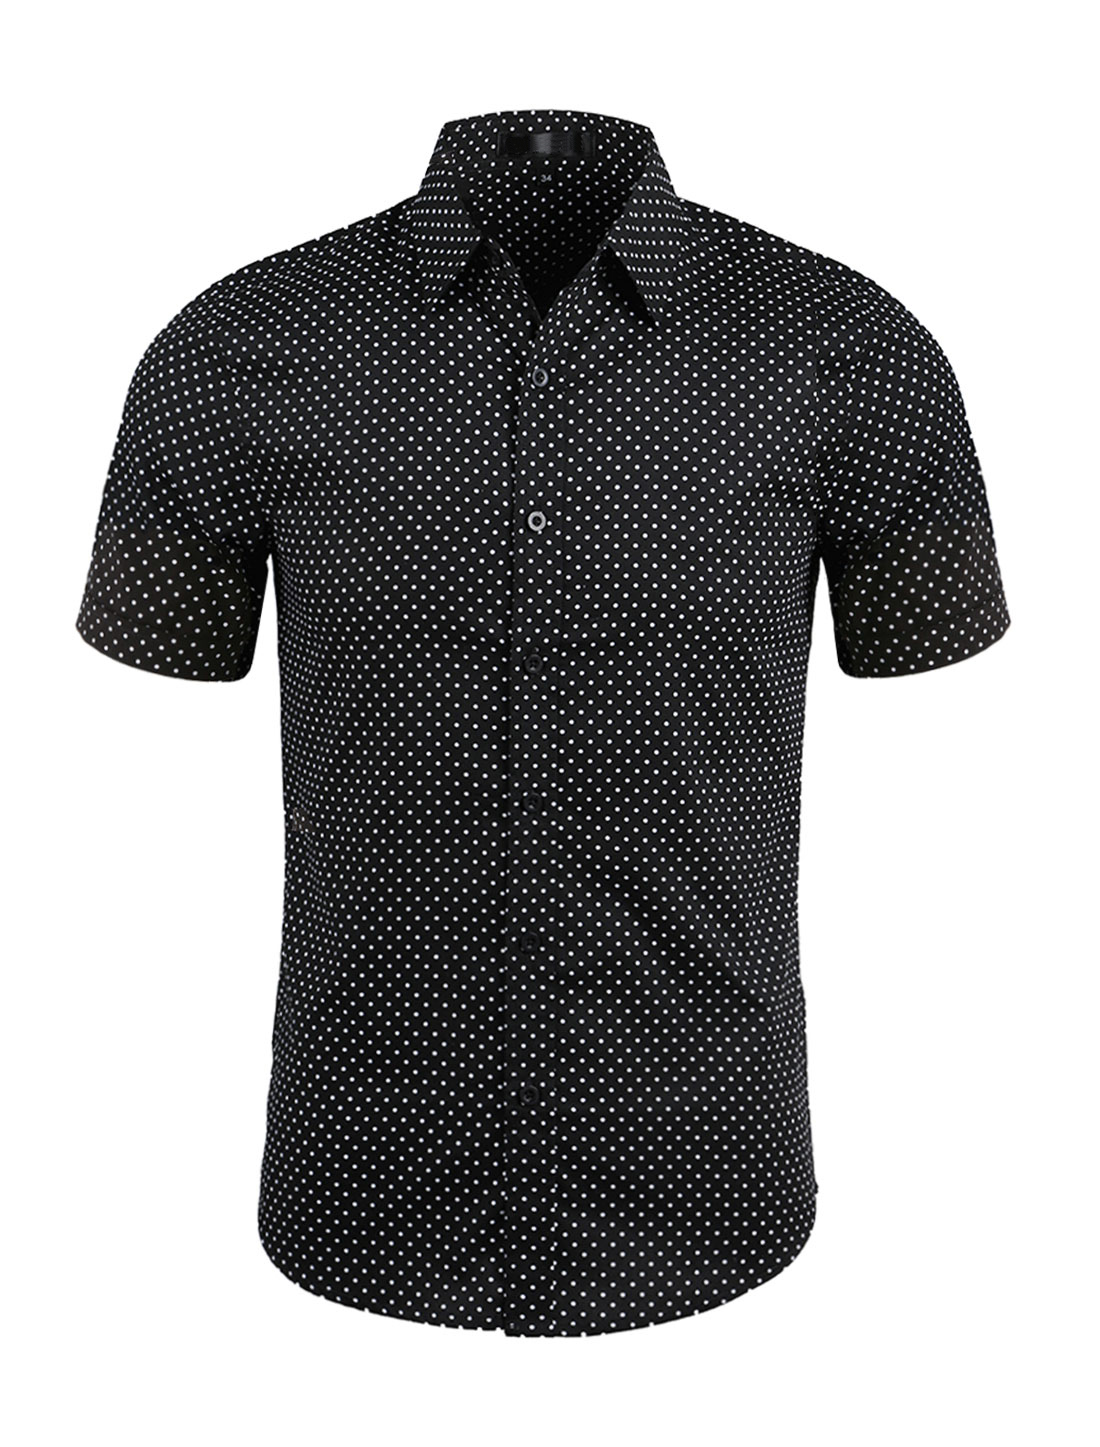 Men Dots Point Collar Short Sleeves Button Down Shirt Black M